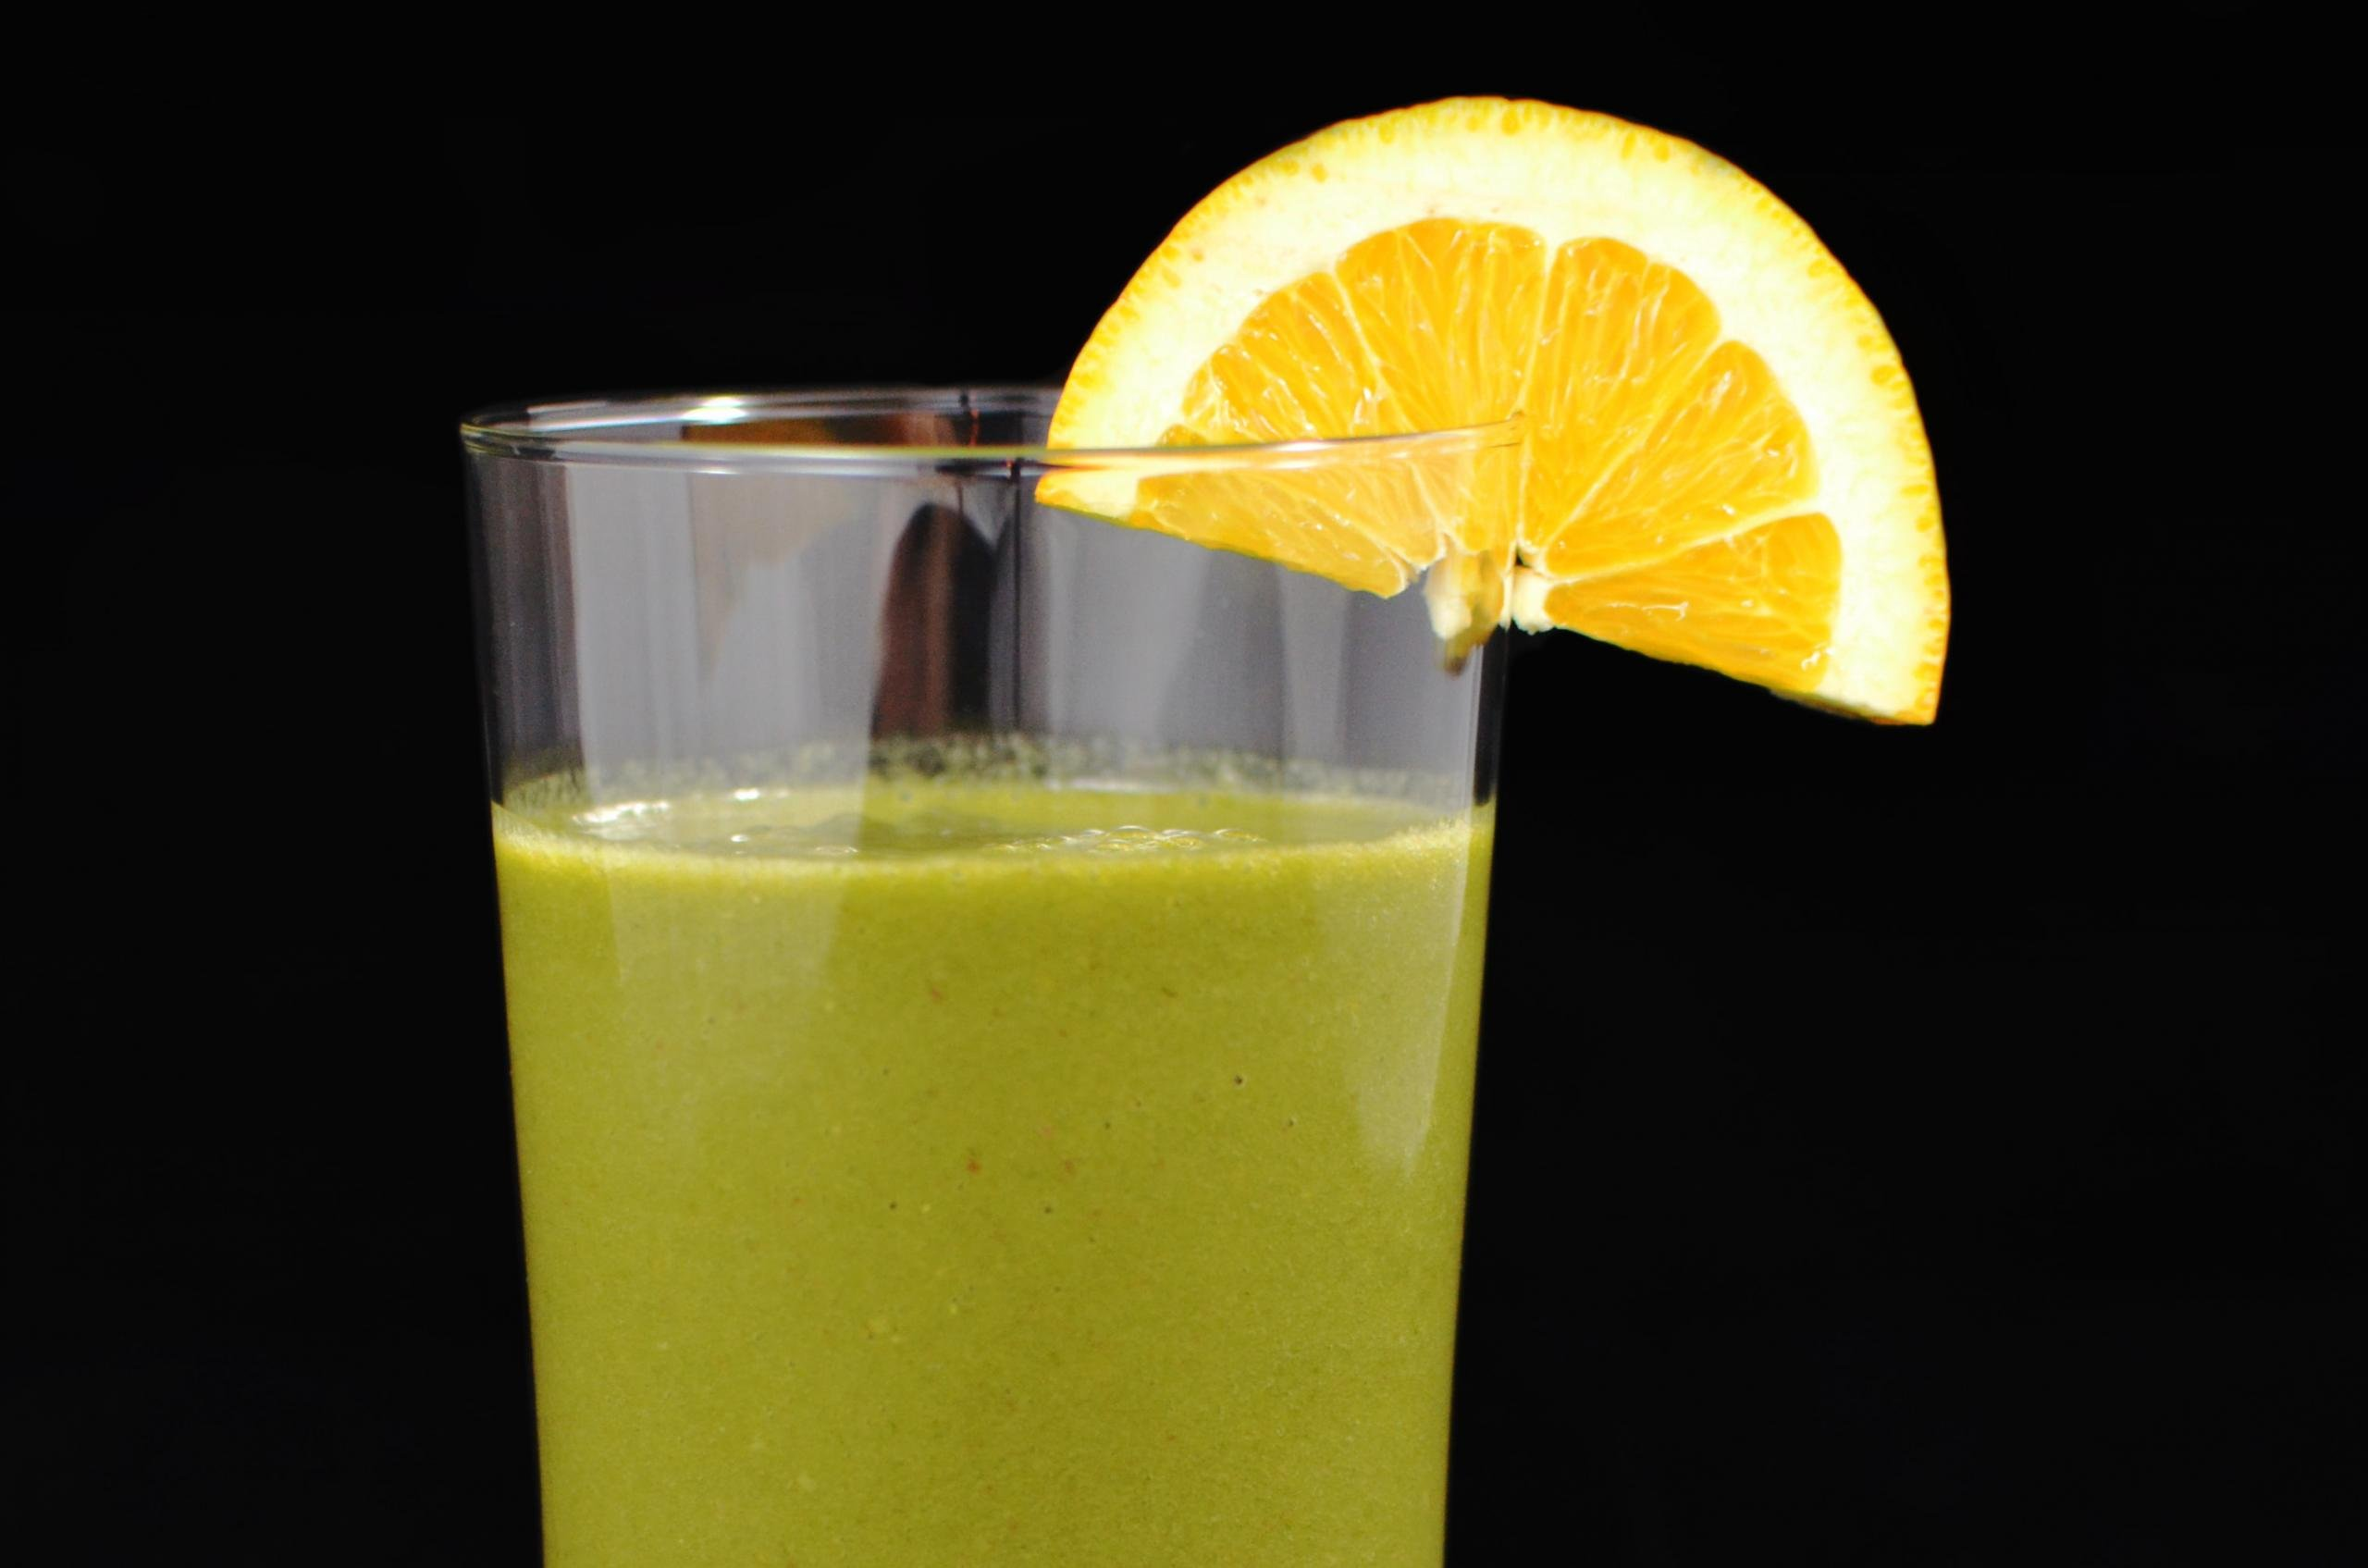 Green Smoothie with a orange slice on the brim of the glass